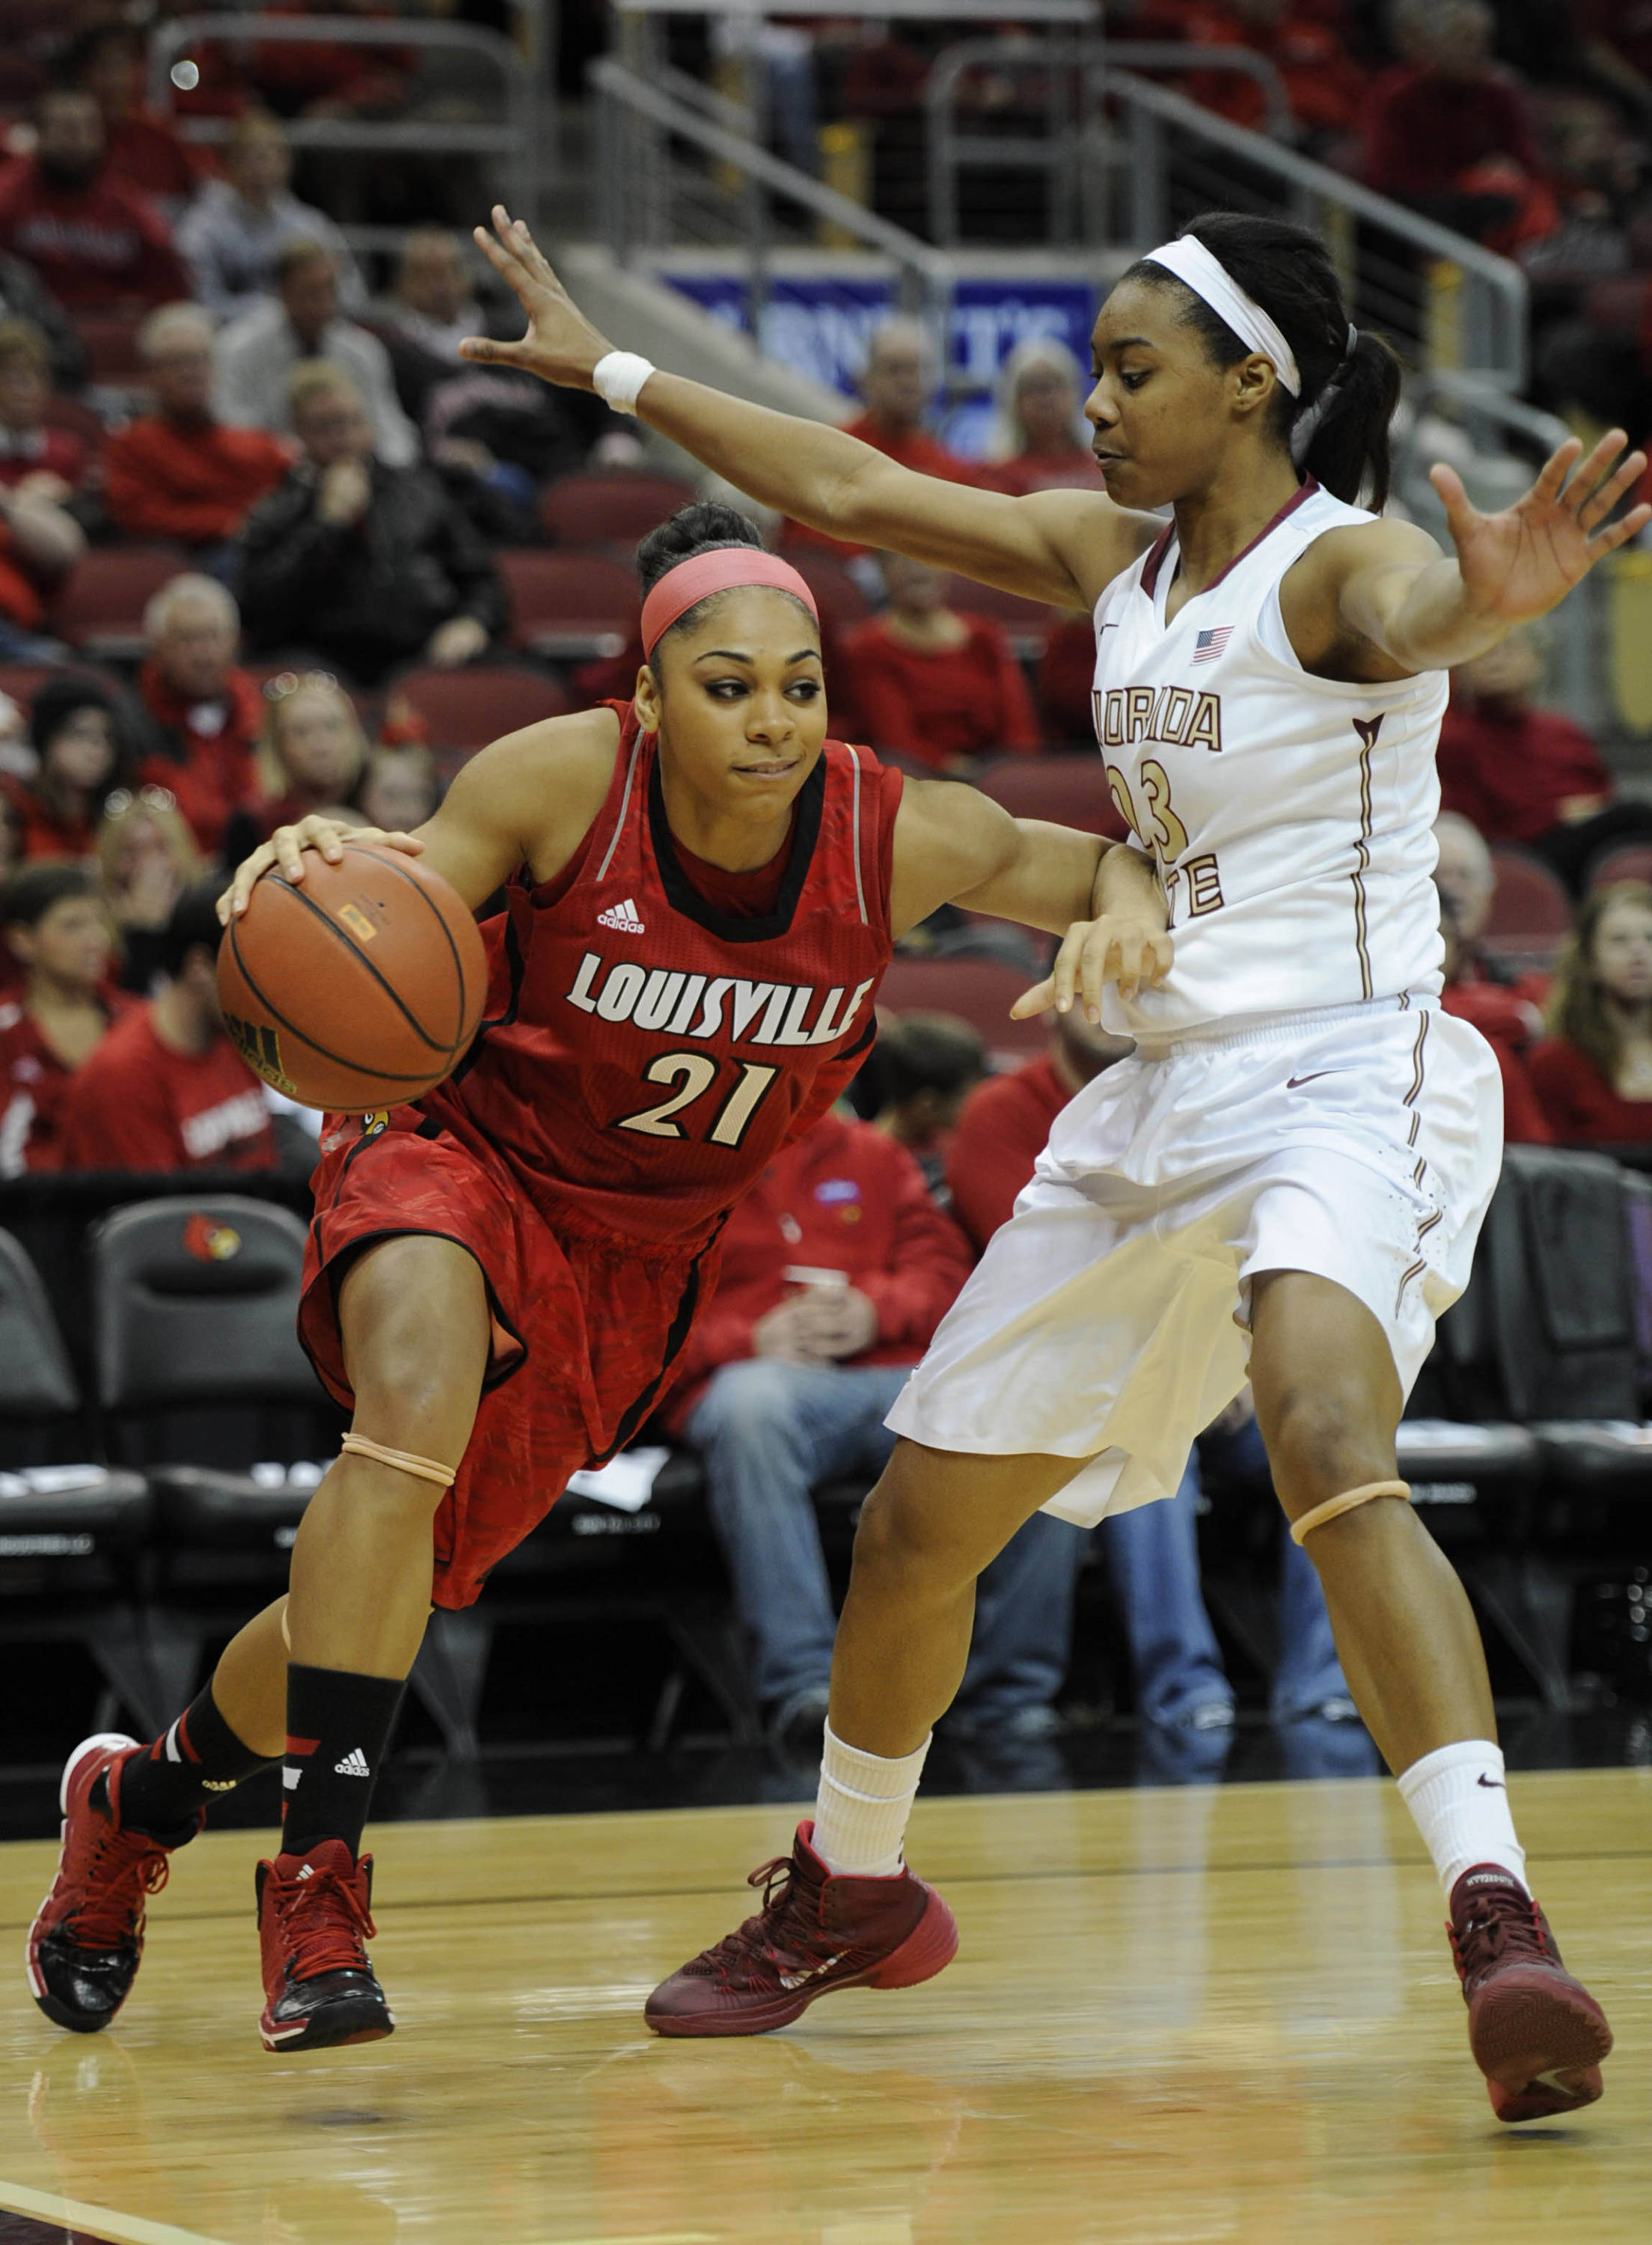 Nov 24, 2013; Louisville, KY, USA; Louisville Cardinals guard Bria Smith (21) dribbles against Florida State Seminoles forward Ivey Slaughter (23) during the first half at KFC YUM! Center. Mandatory Credit: Jamie Rhodes-USA TODAY Sports